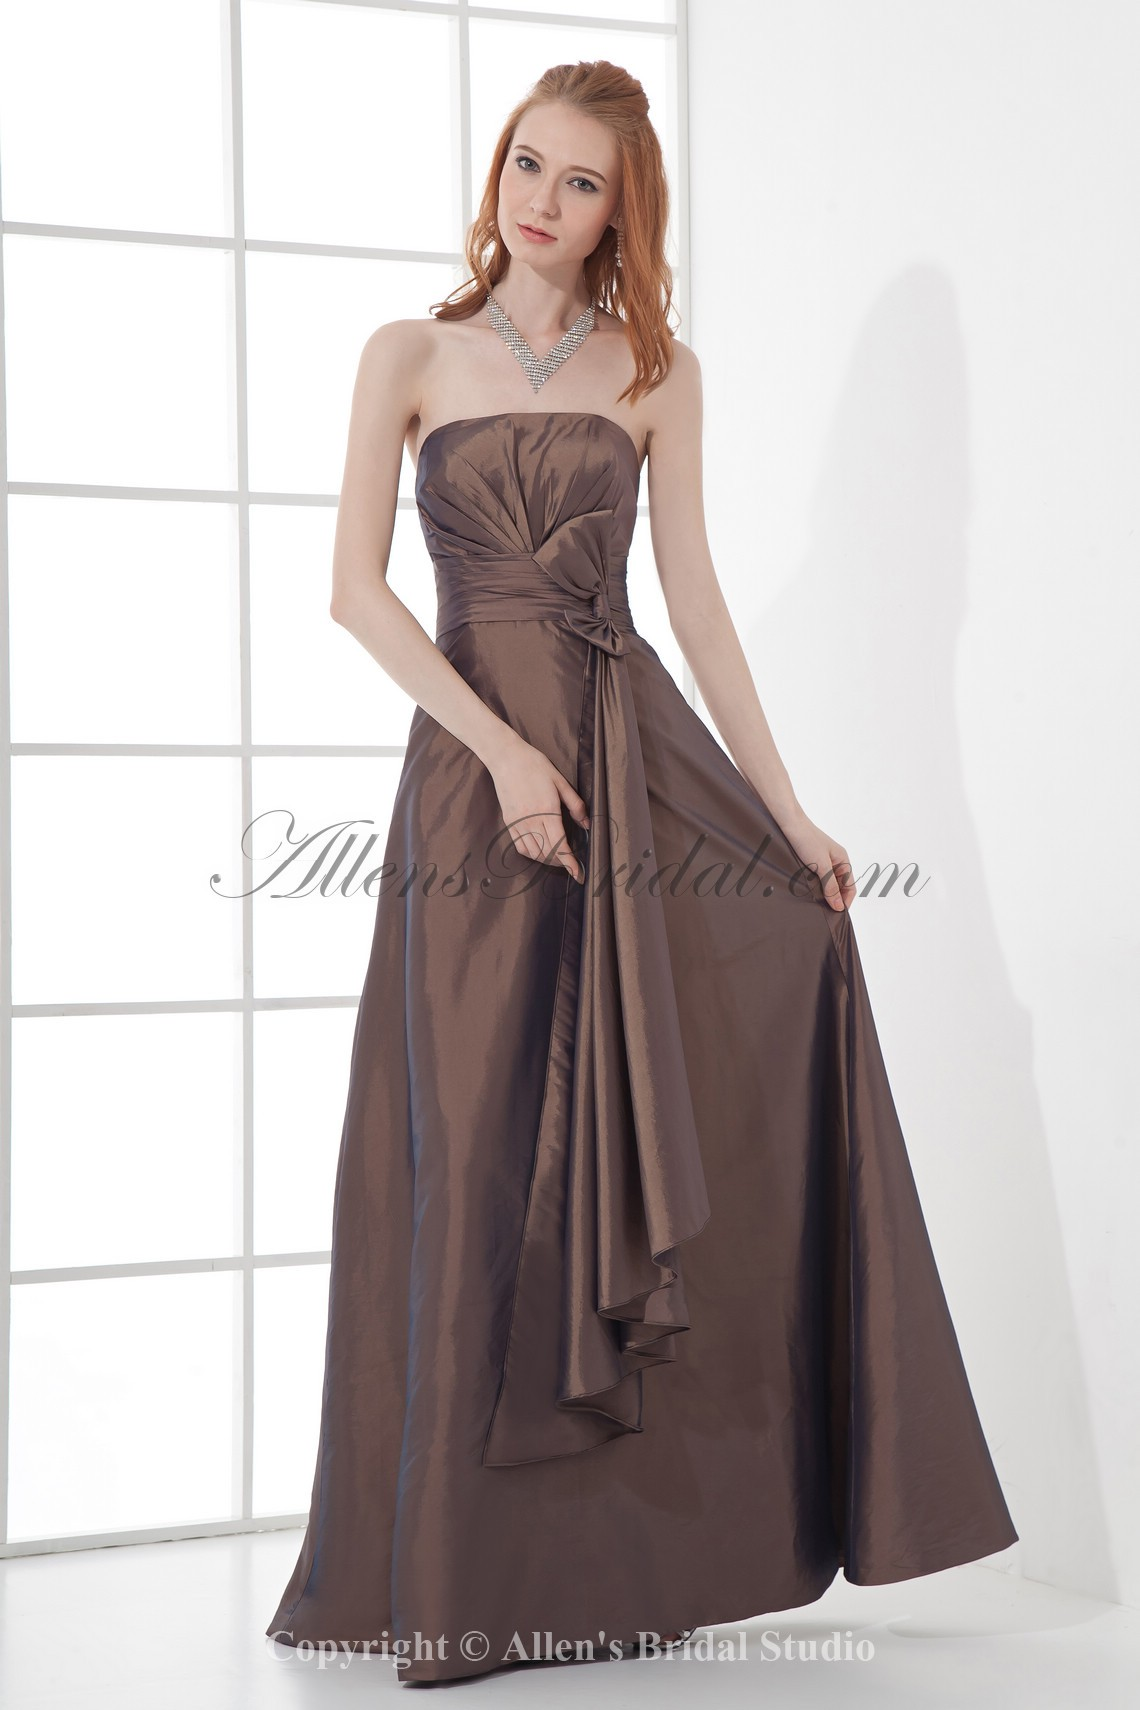 /56-441/taffeta-strapless-a-line-floor-length-ruched-prom-dress.jpg